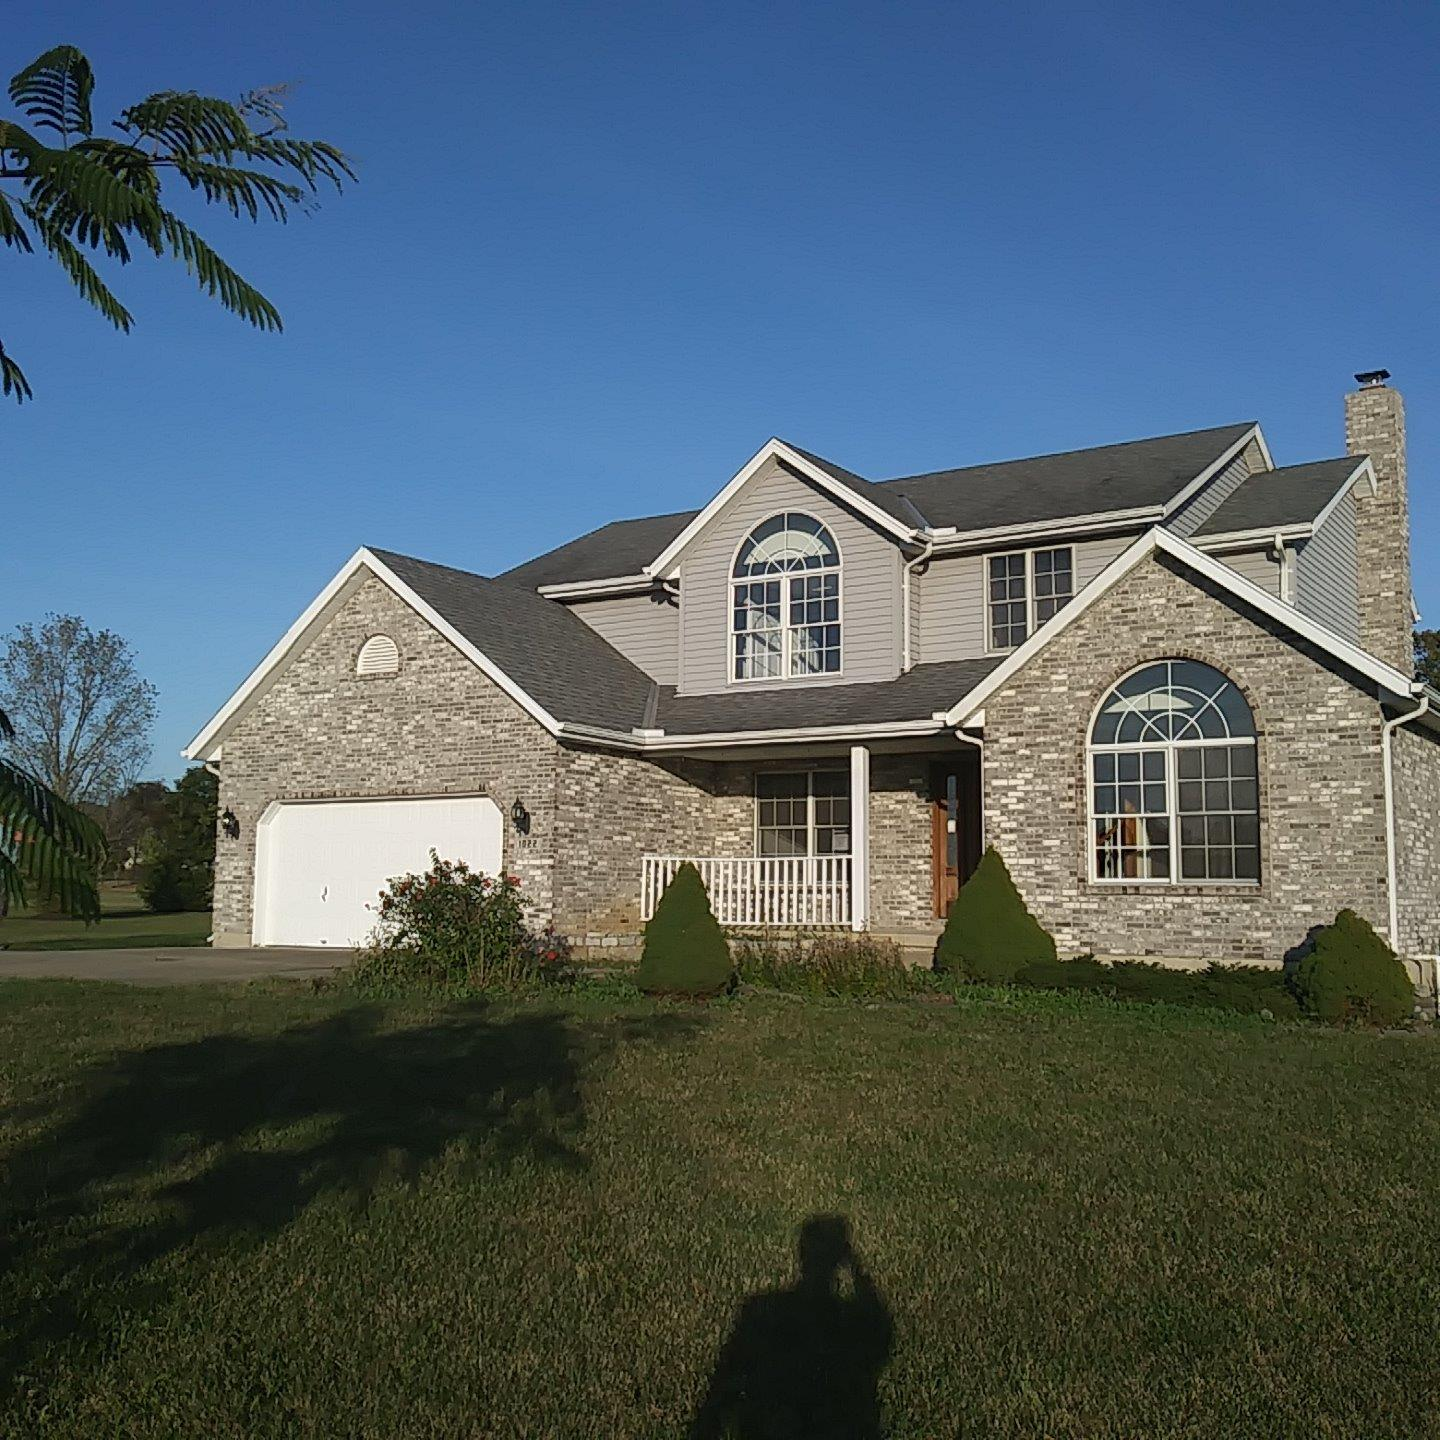 1822 Reily Woods Ln Reily Twp Oh 45056 Listing Details